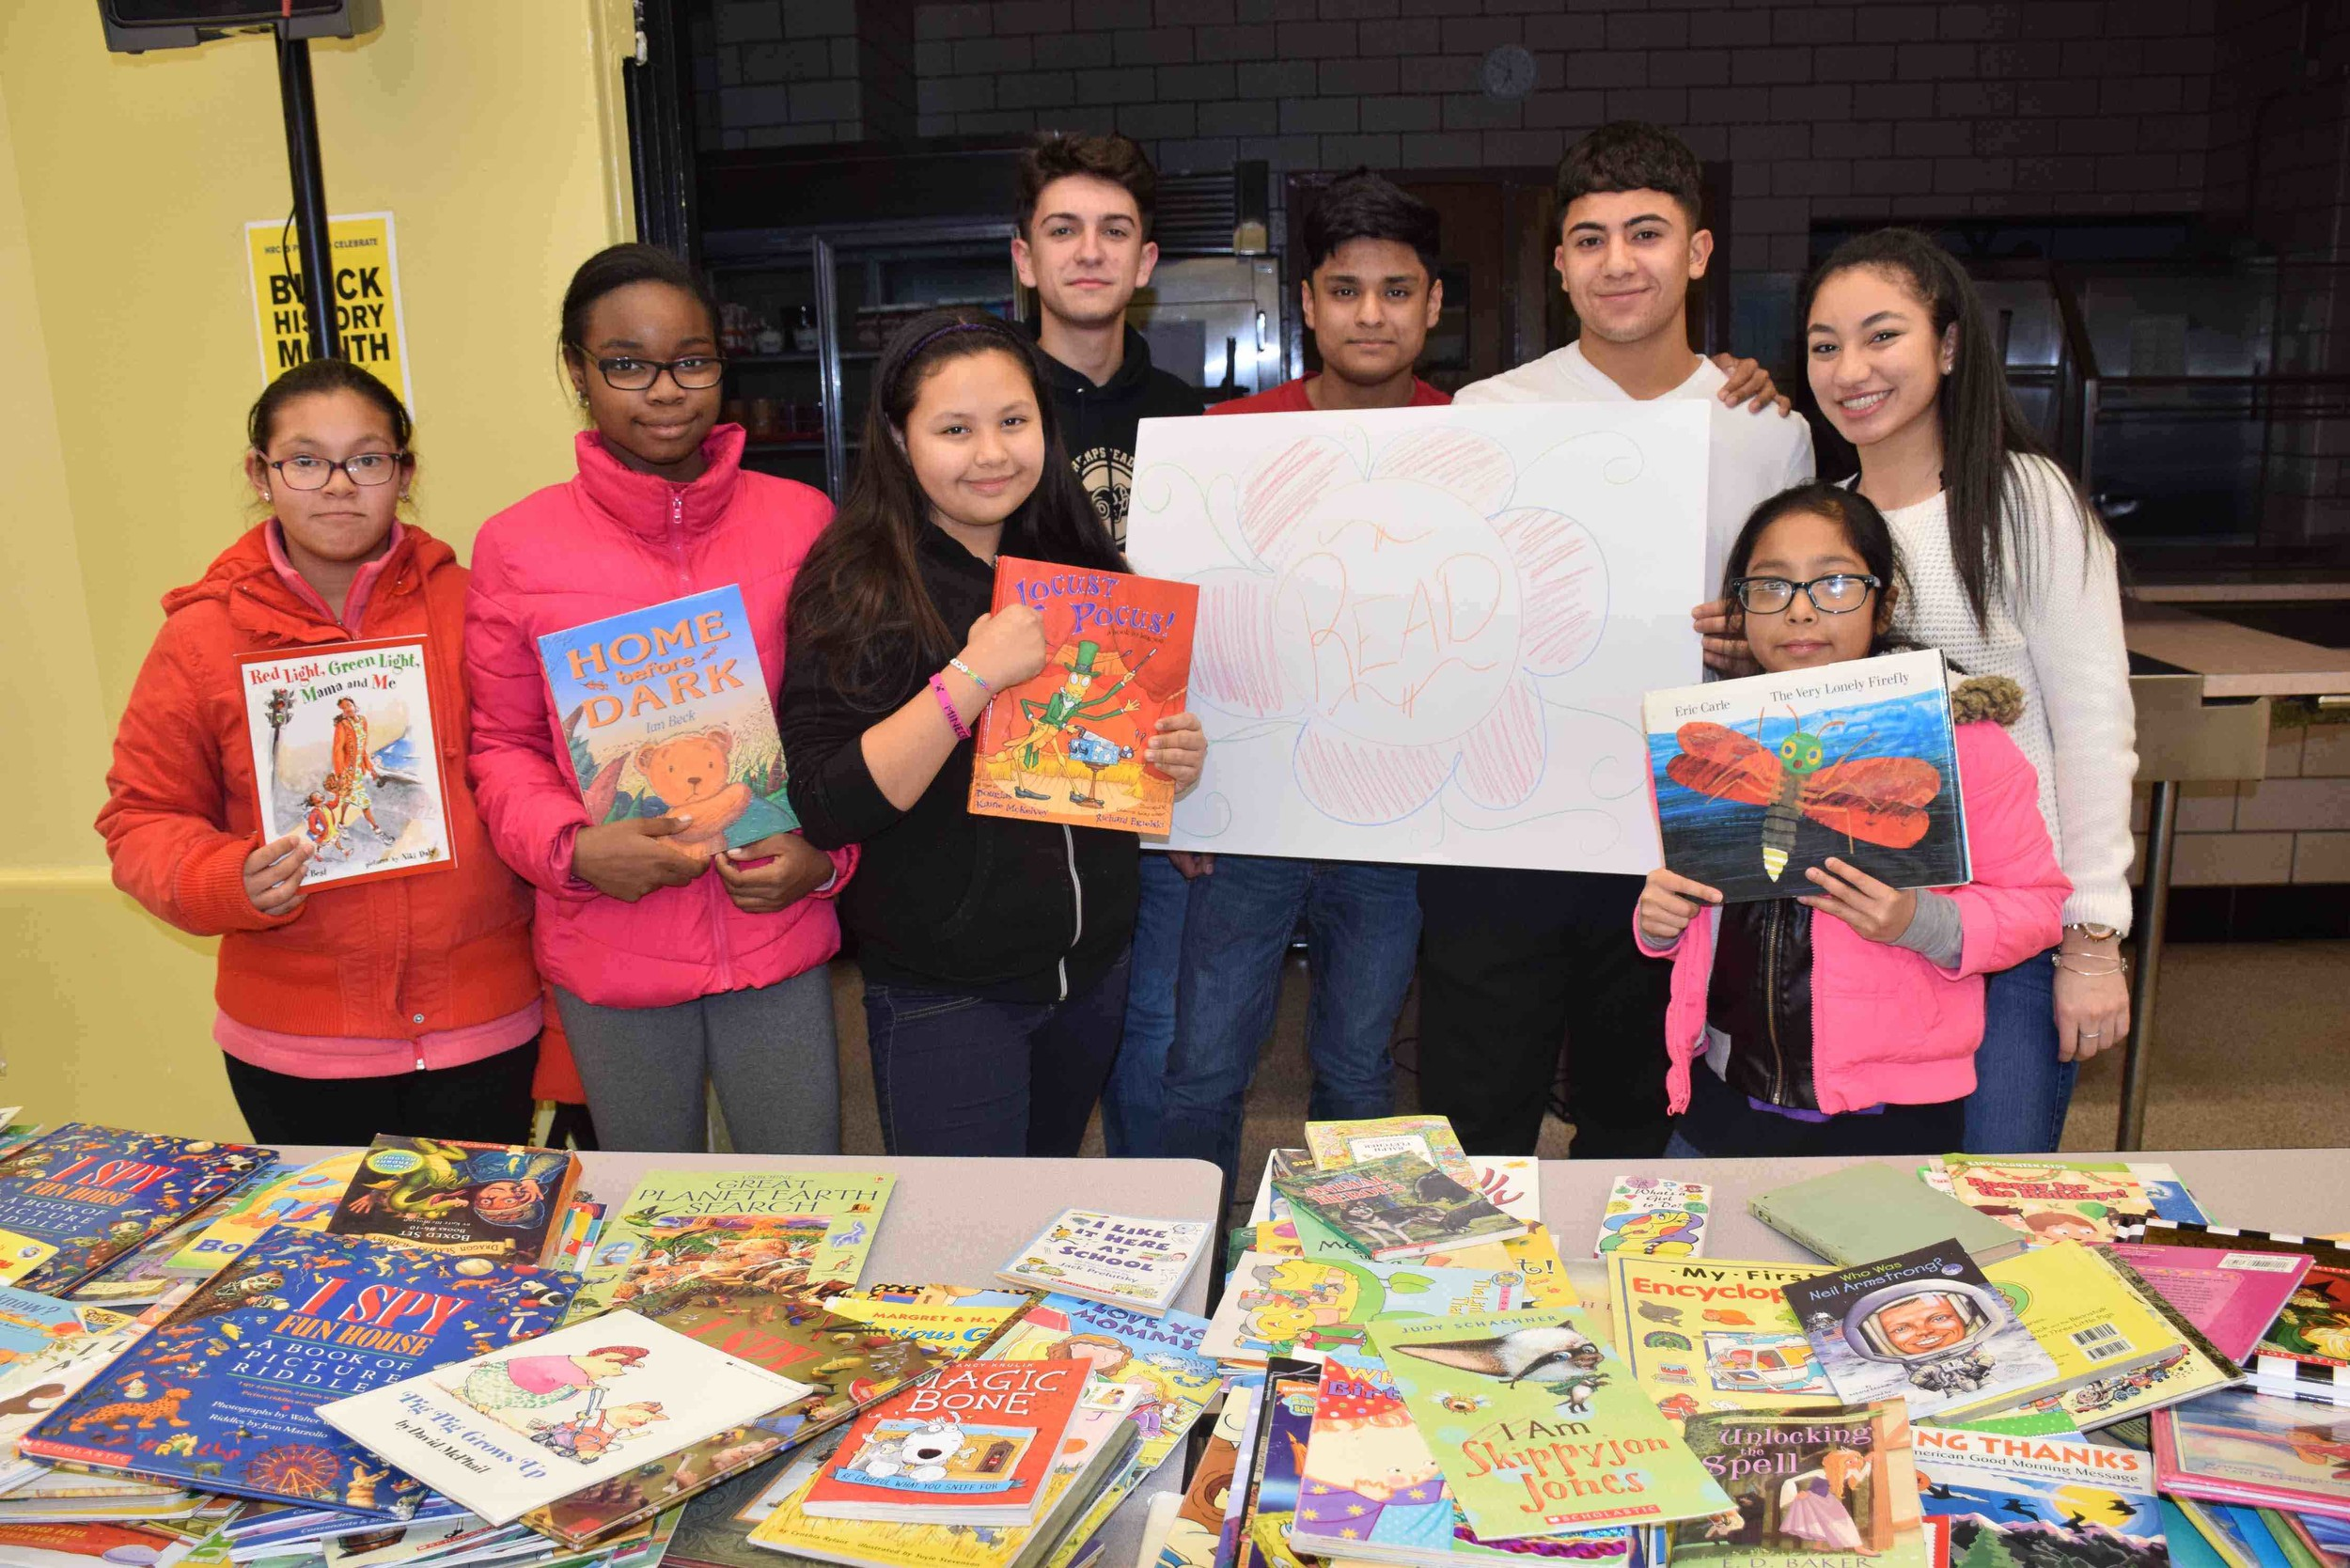 West Hempstead High School held its annual Family Literacy Night for the community last month.